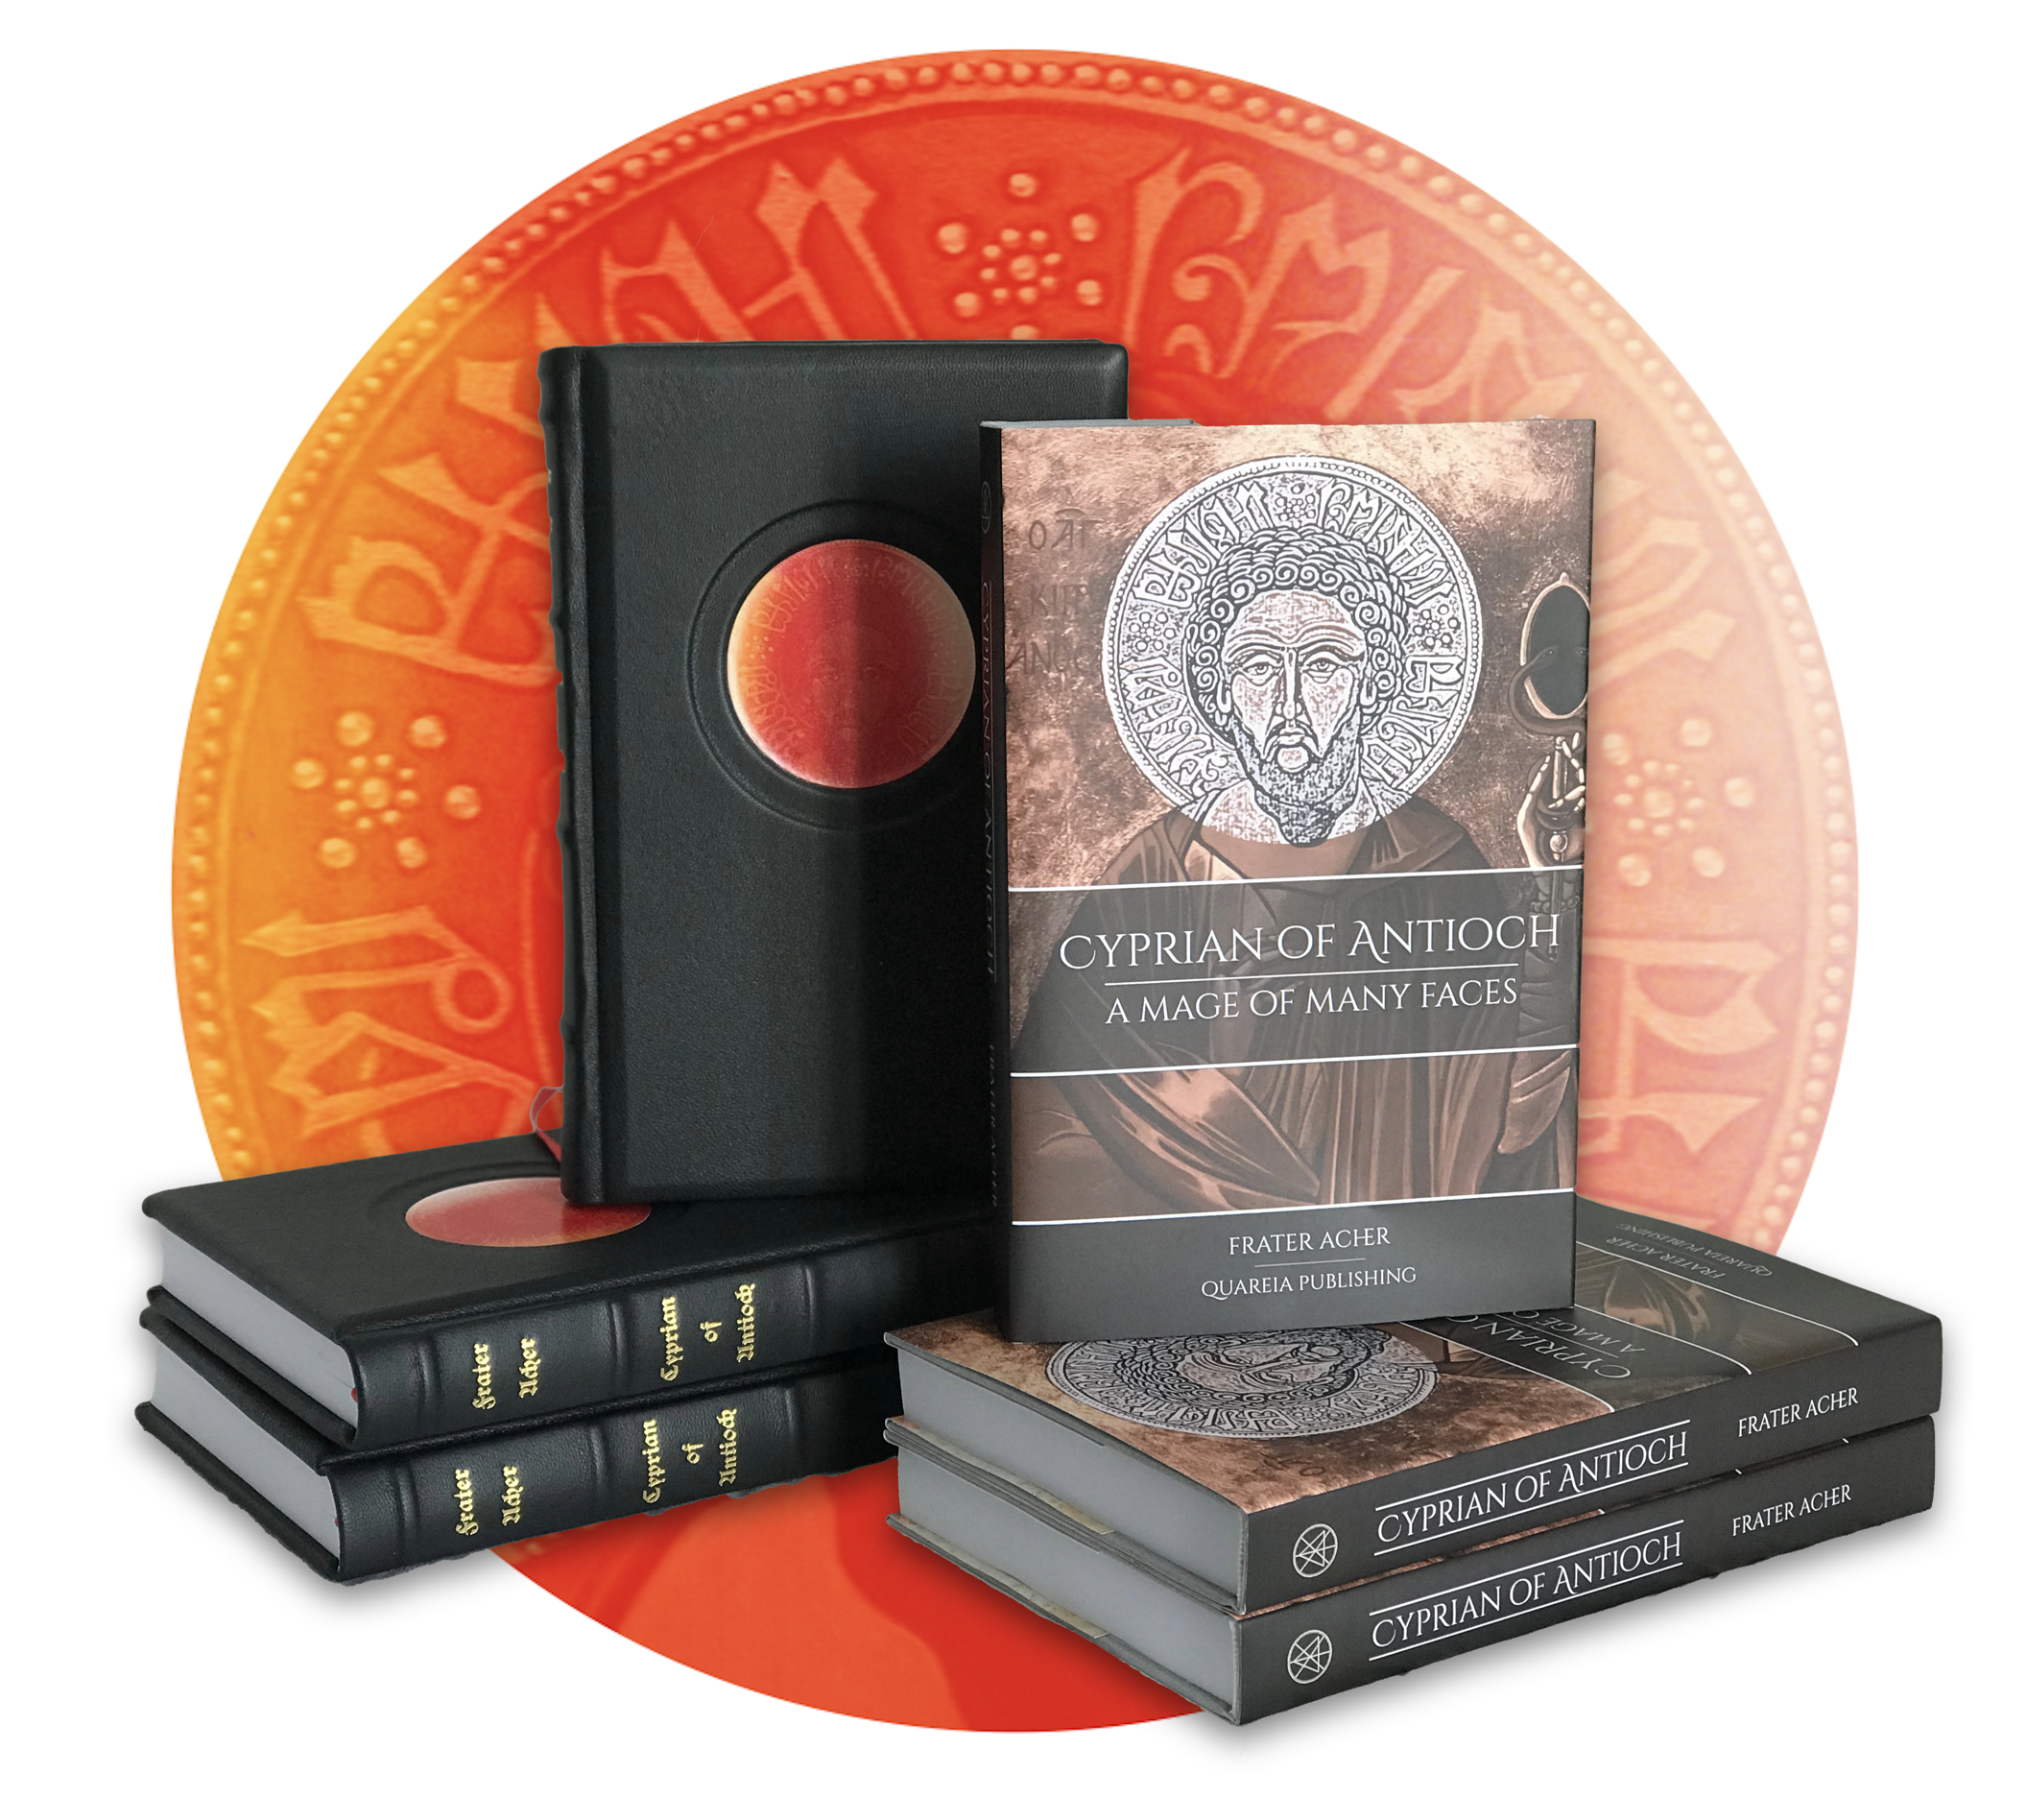 Cyprian of Antioch: A Mage of Many Faces - 310 pages, full color. Standard hardcover and full-leather Deluxe Editions available now.